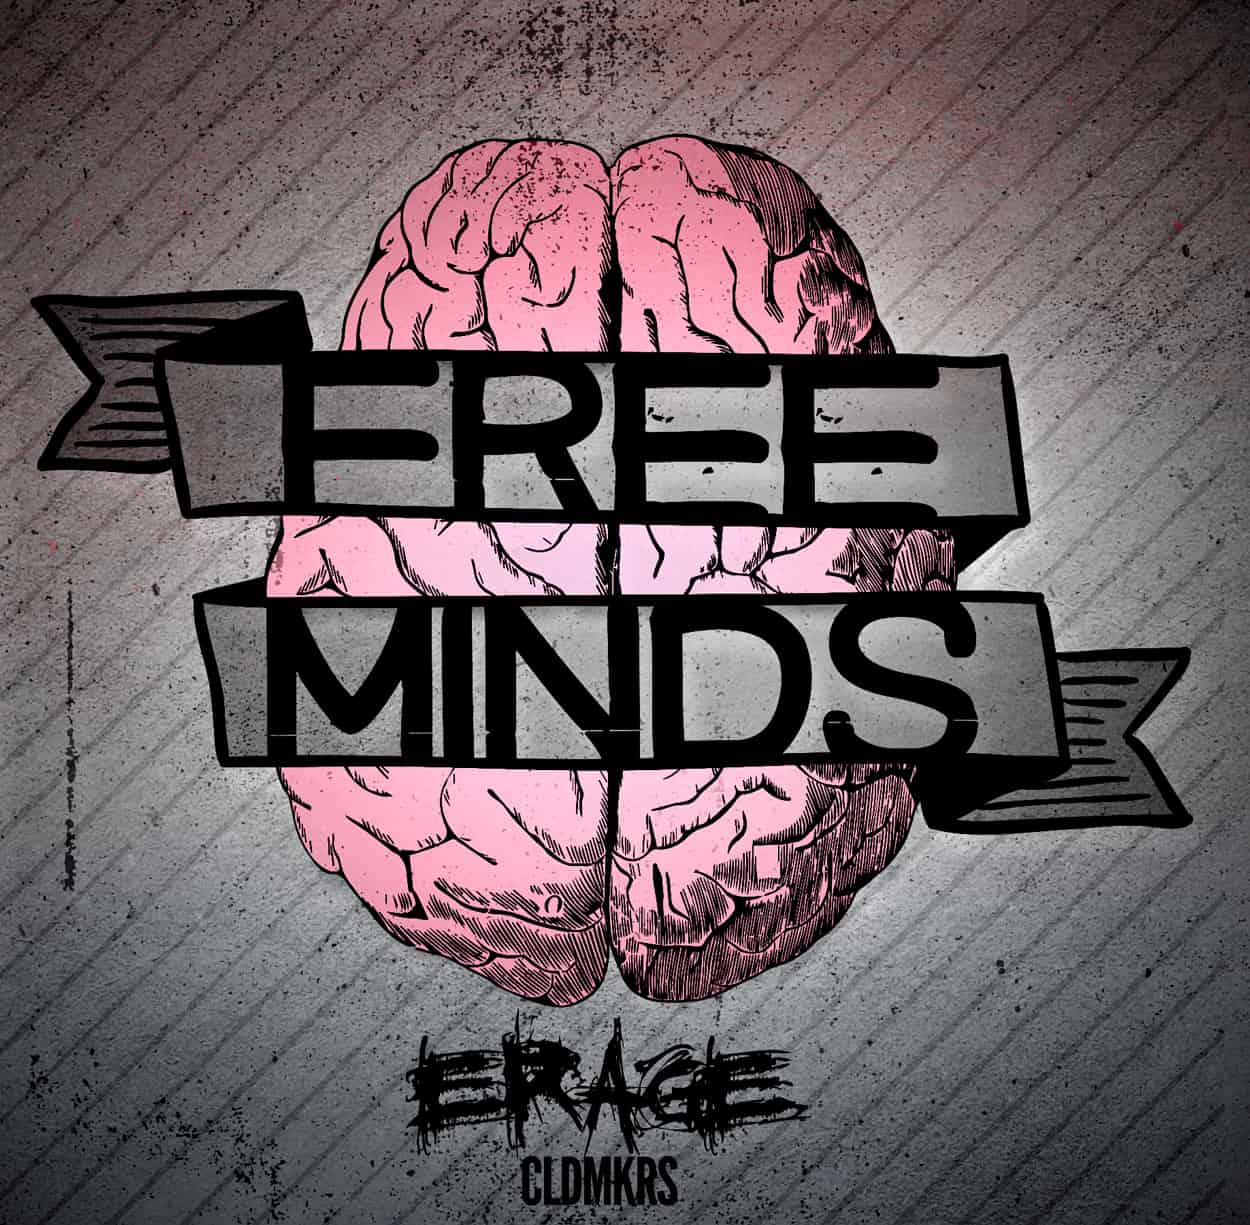 erage - free minds - album art design